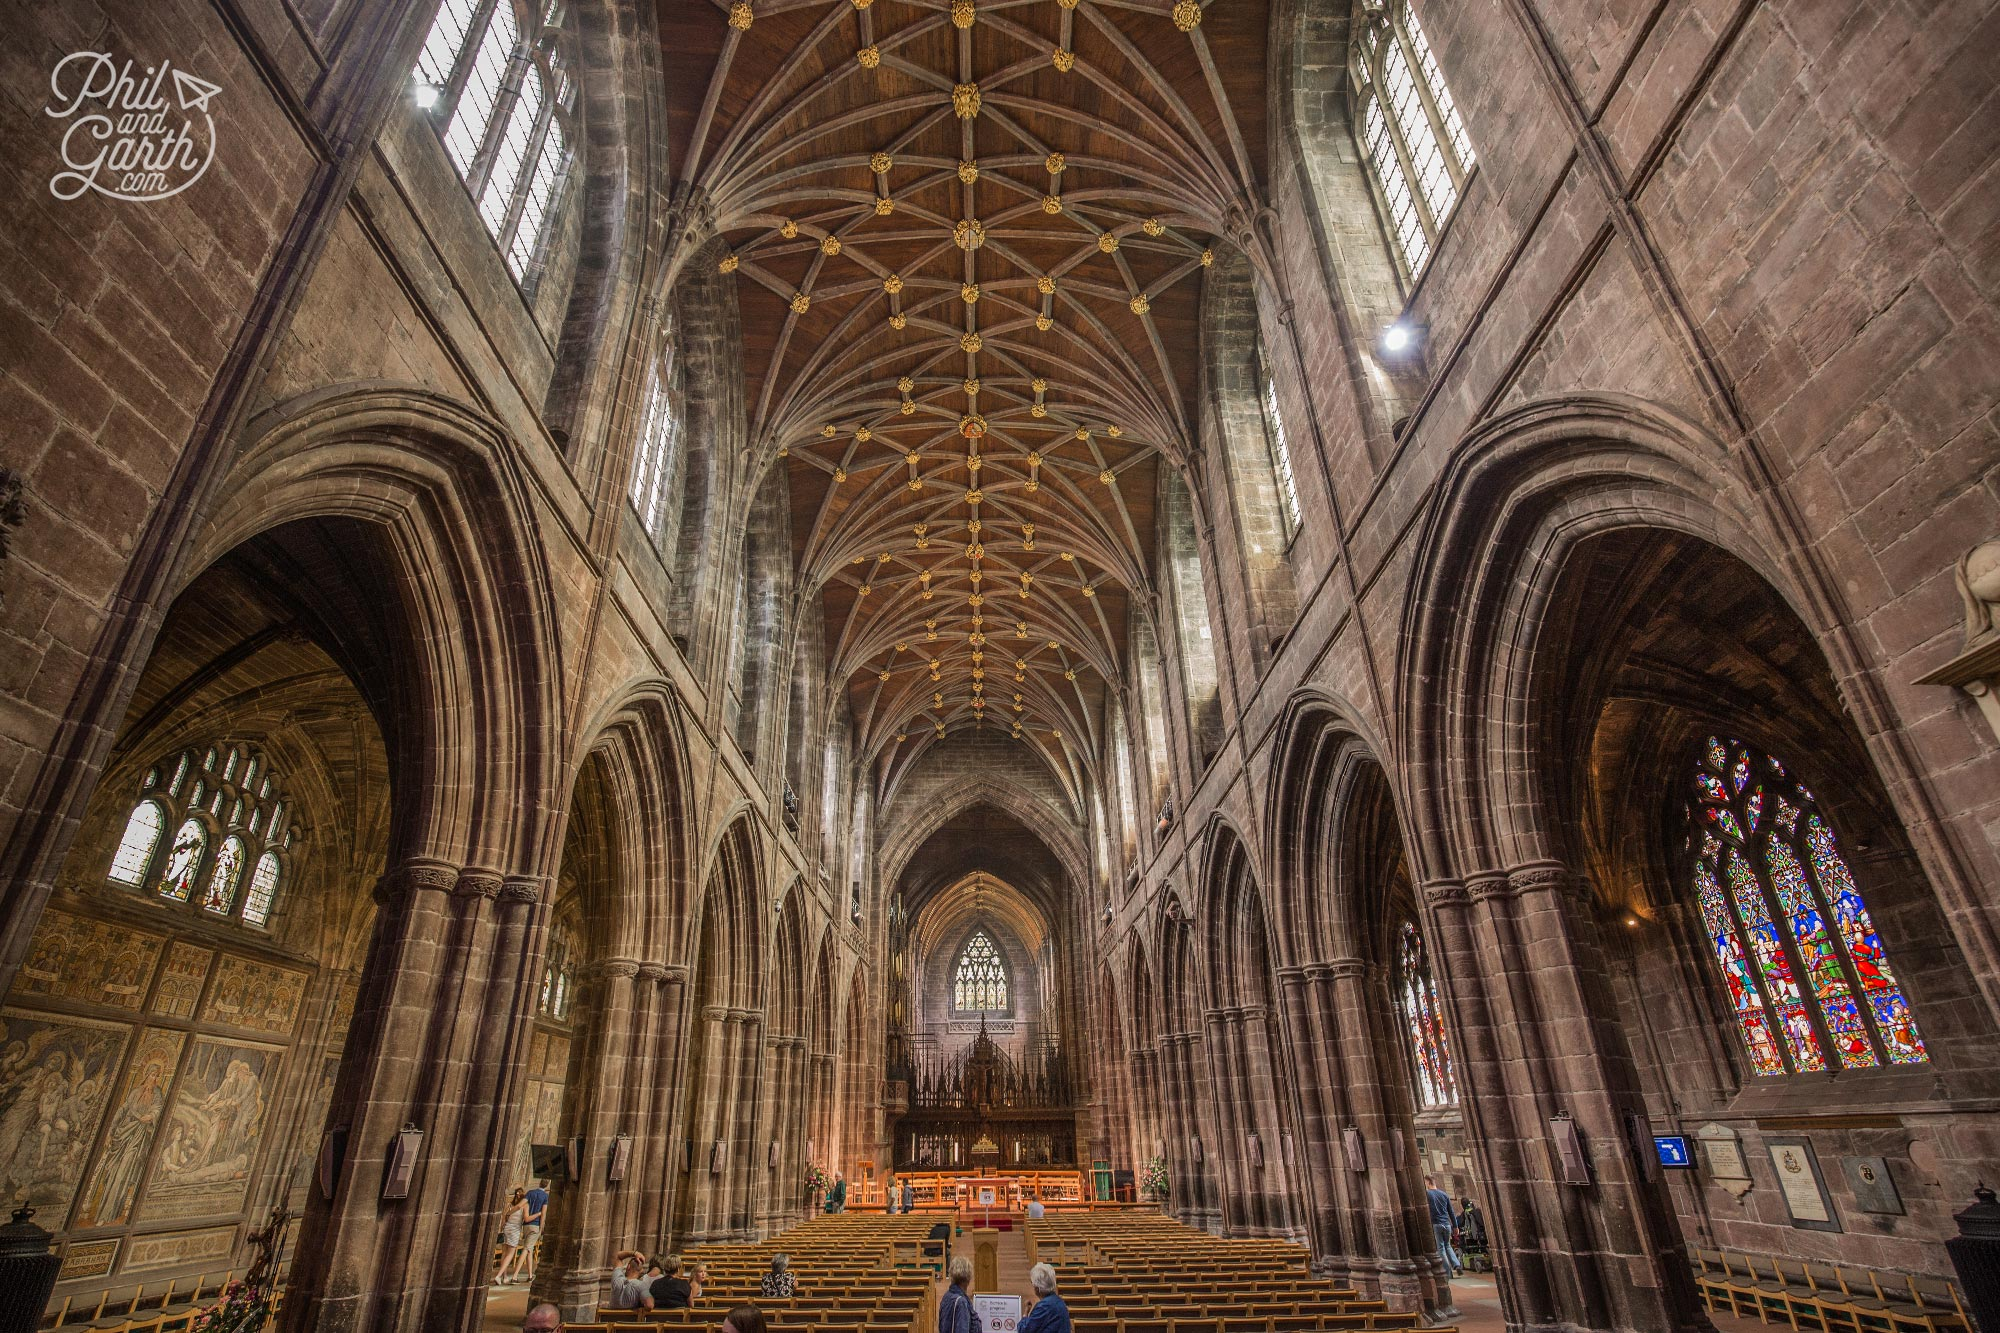 The magnificent interior of Chester Cathedral